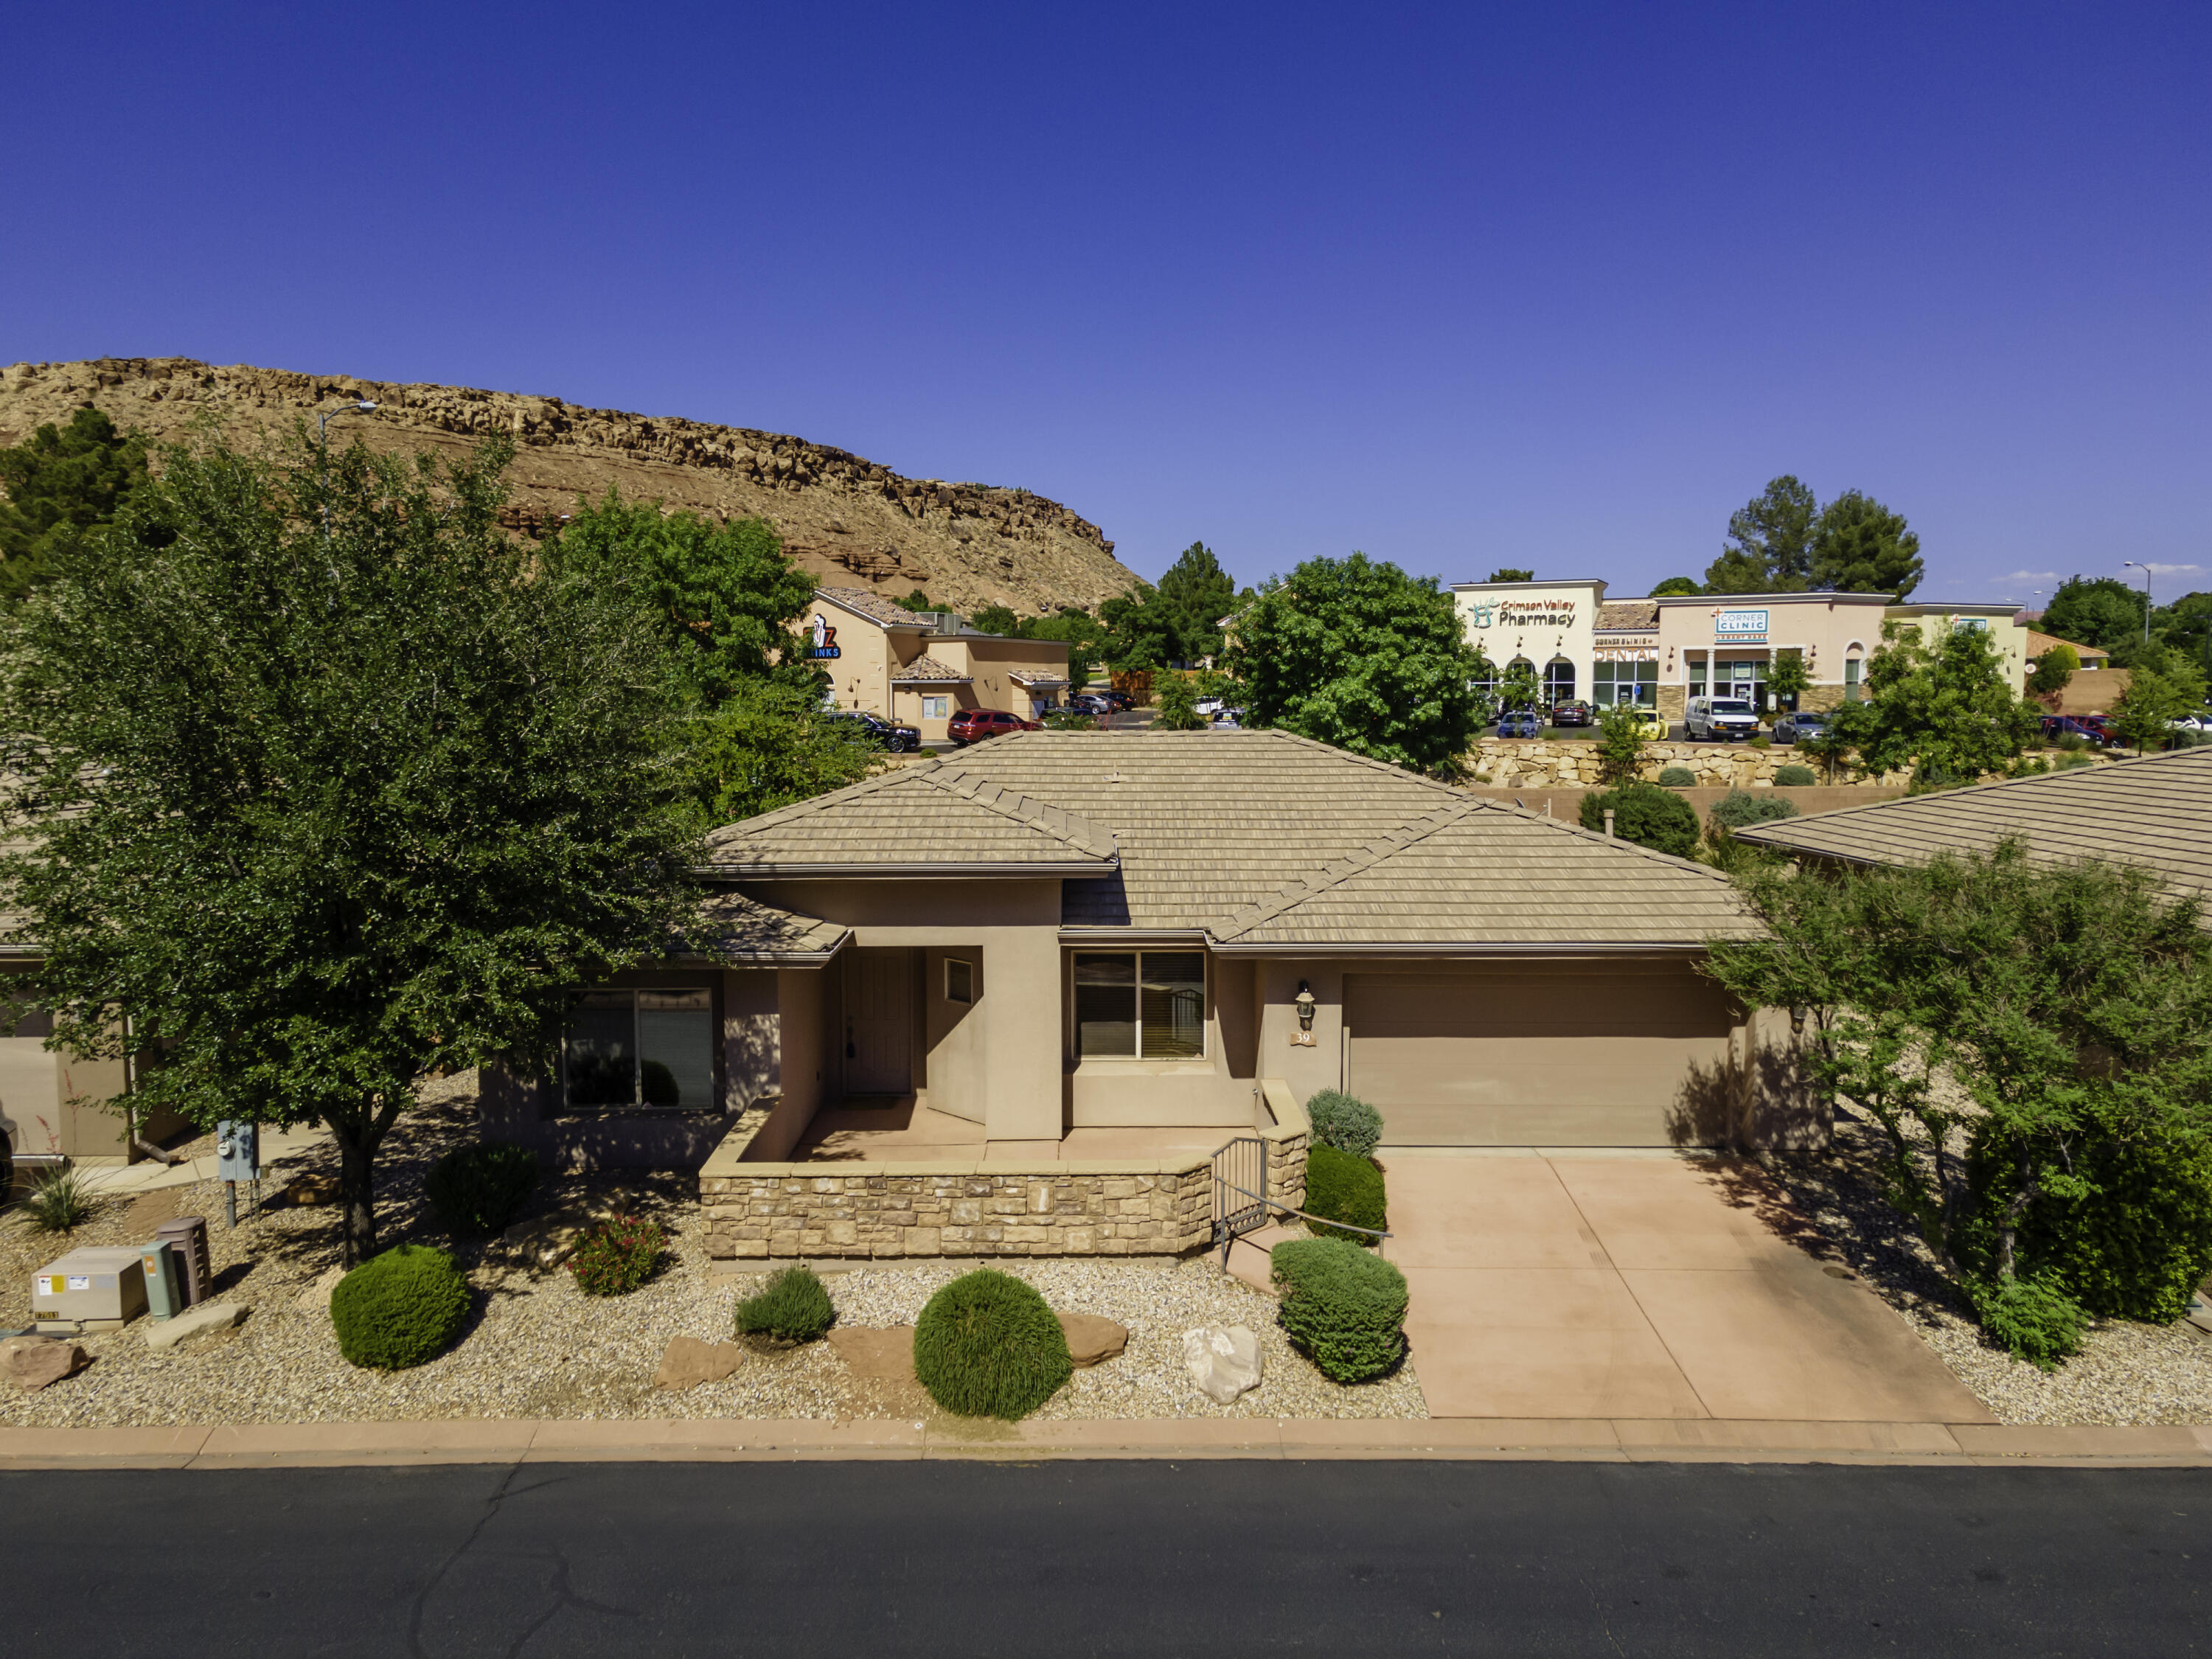 2334 S River Rd Unit 39, St George Ut 84790